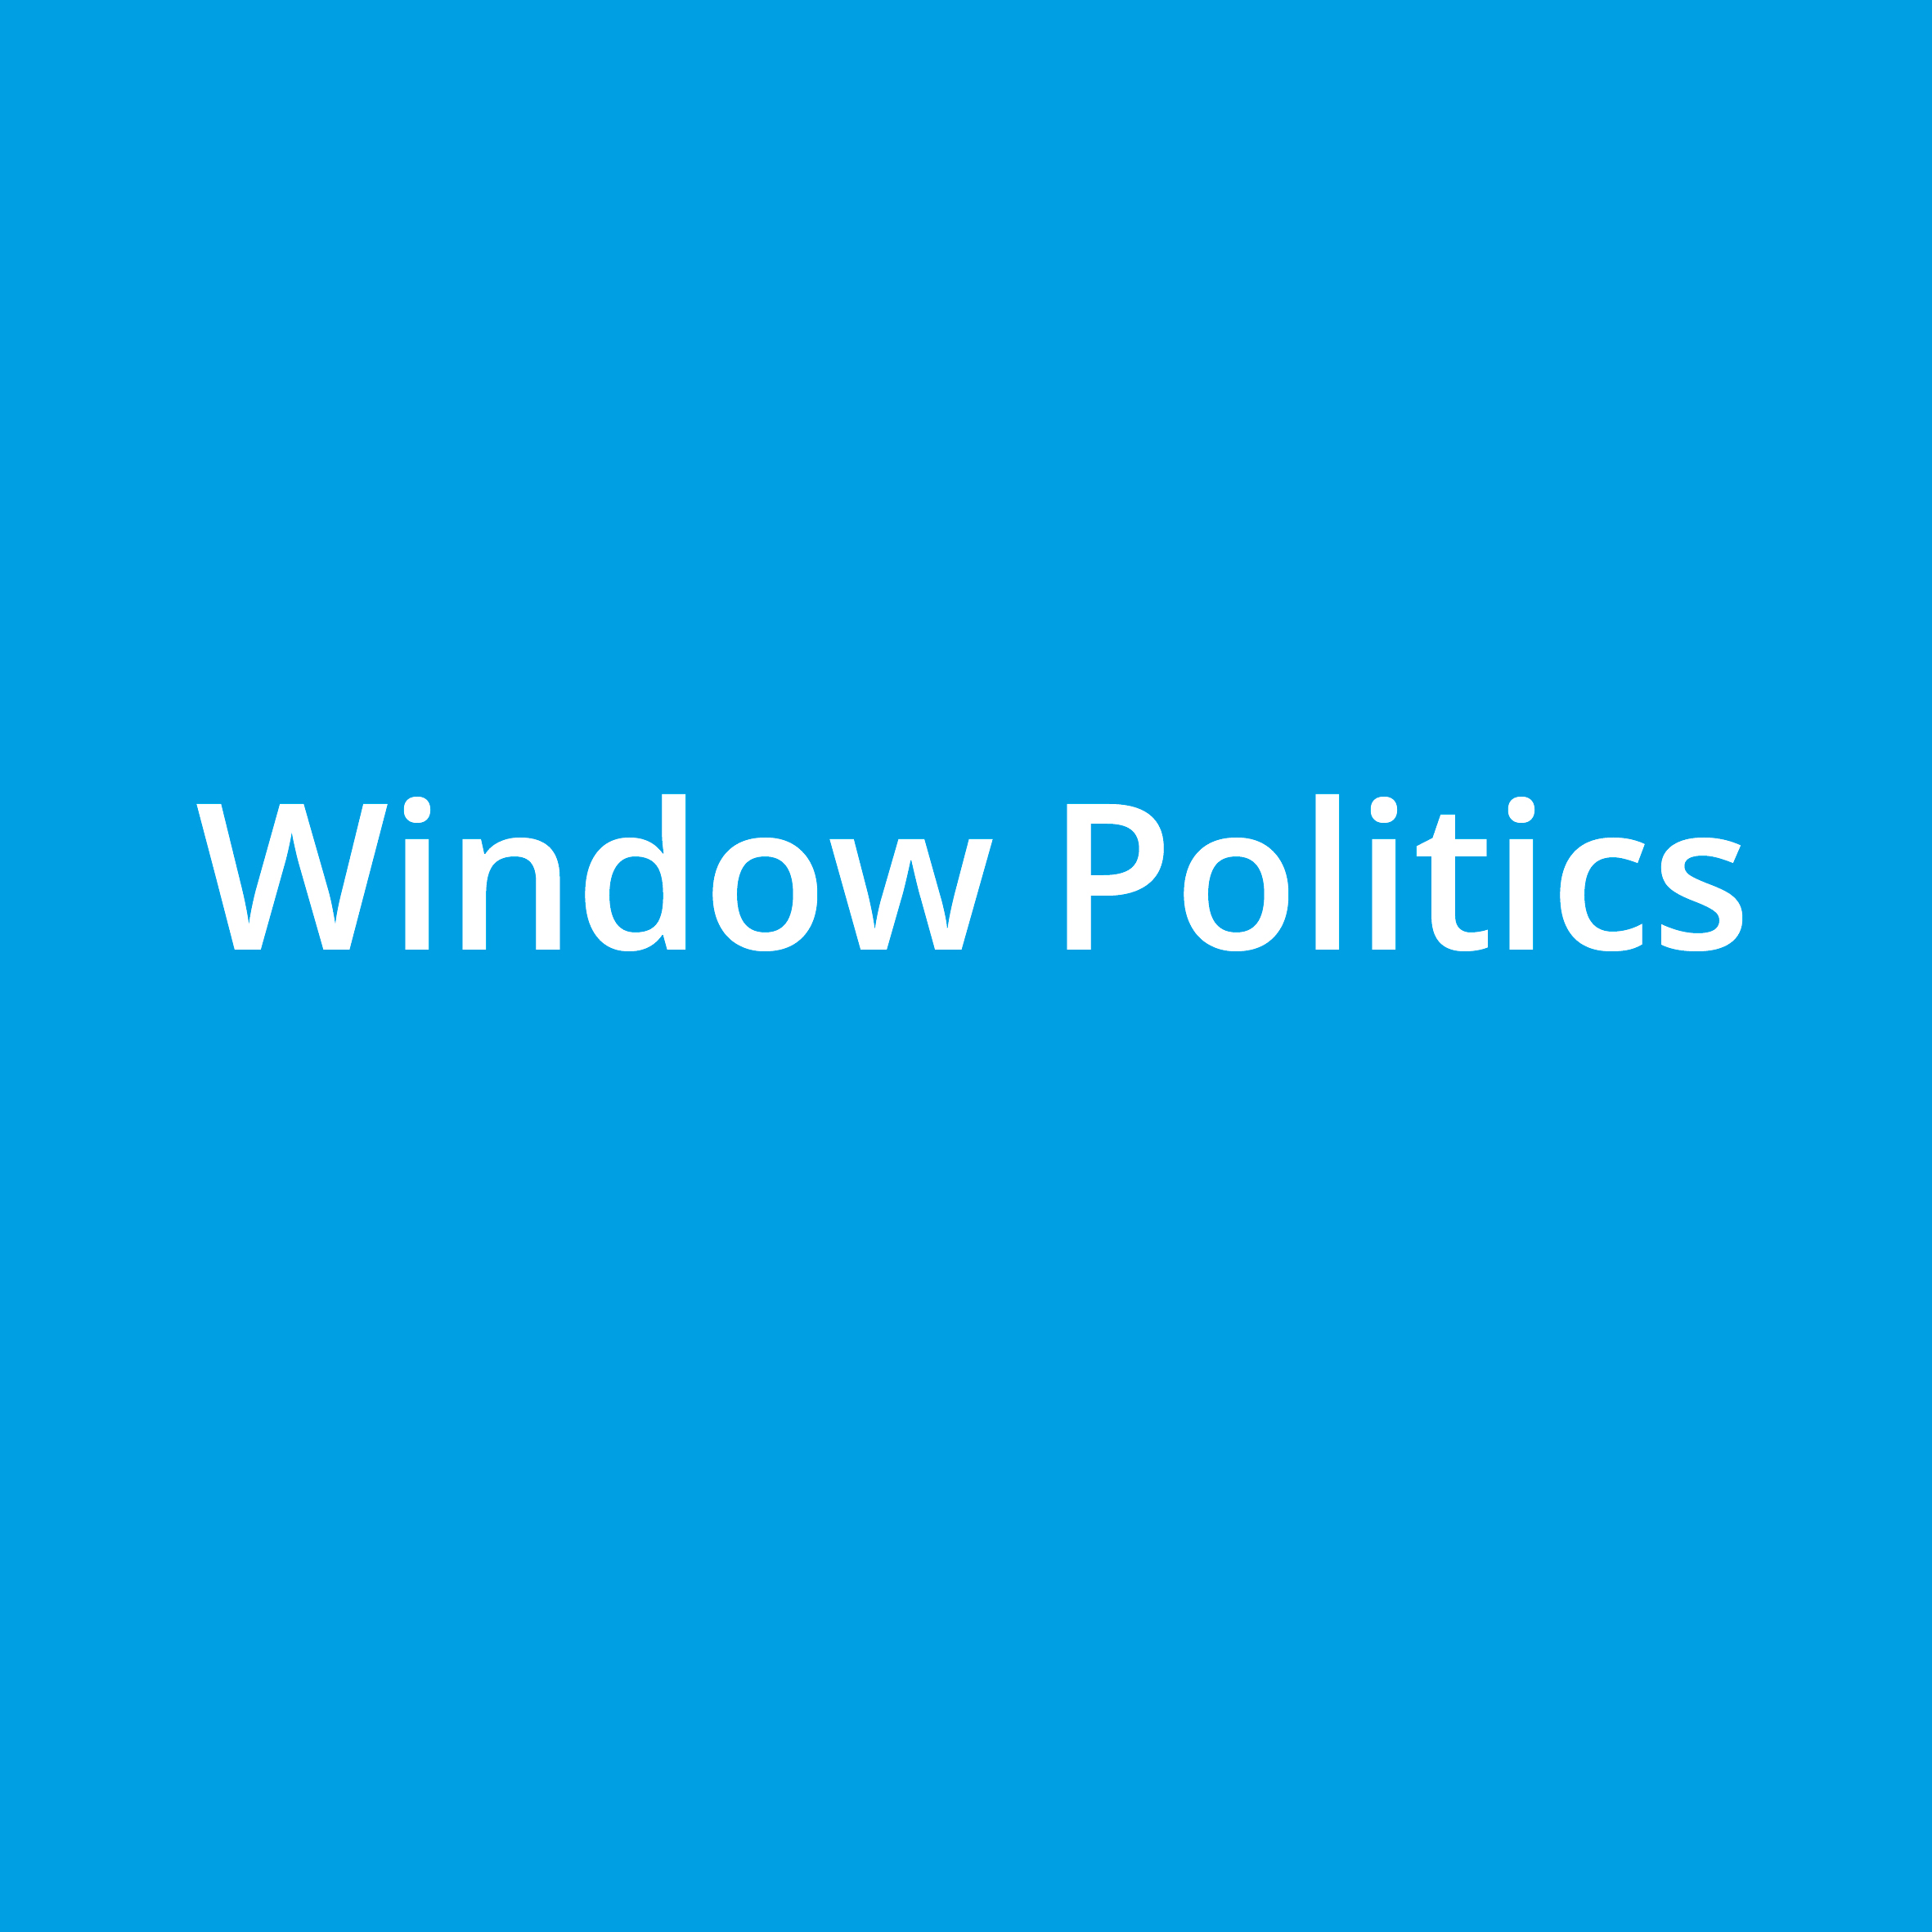 Window Politics